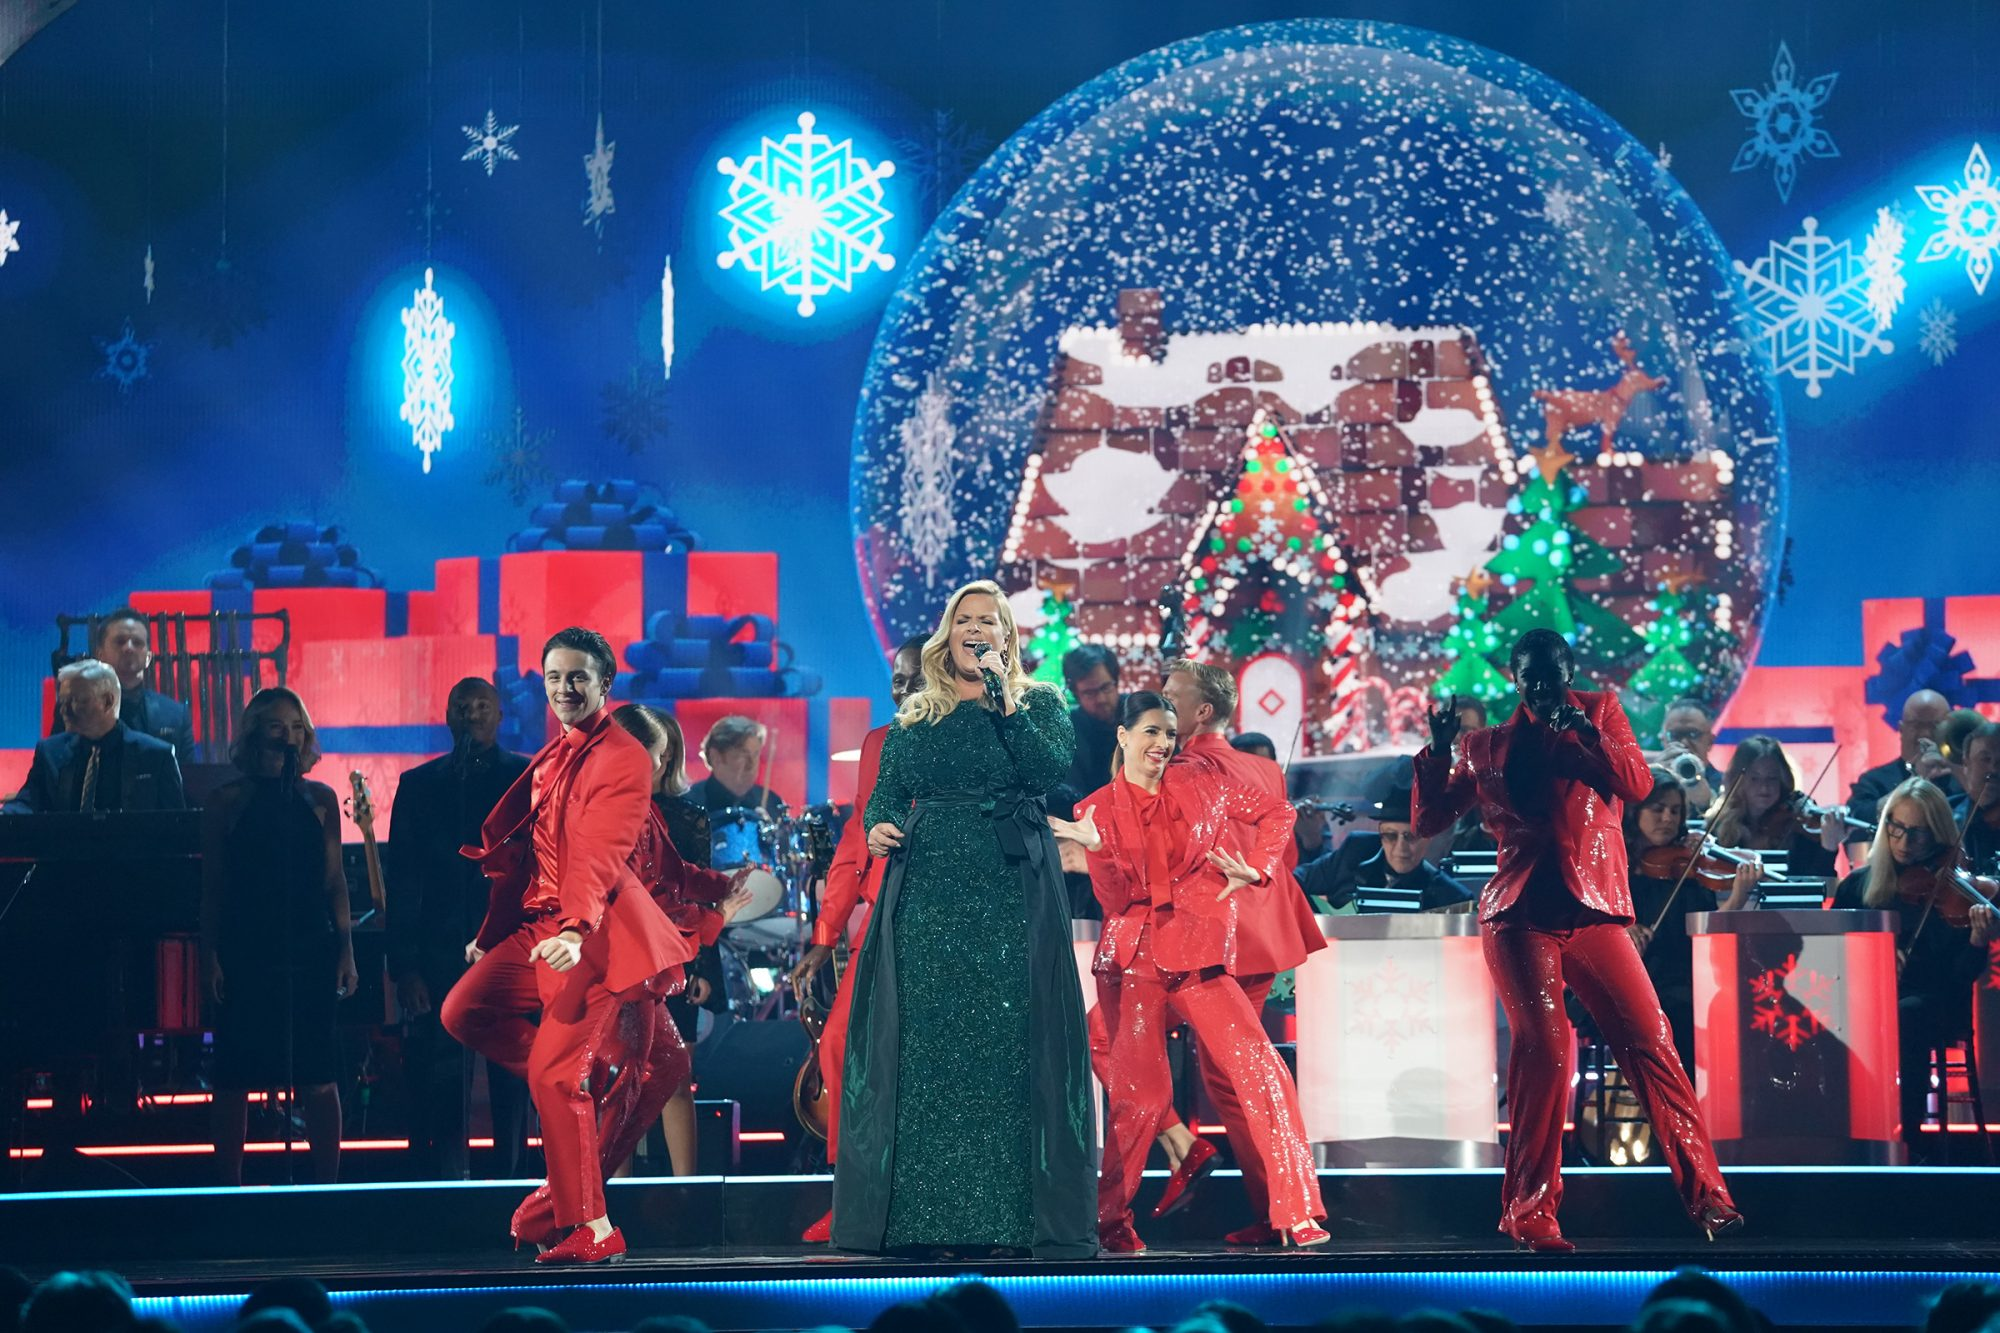 The Name Of The Big Band Orchestra On Cma Christmas 2020 Encore! CMA's Holiday Special Will Be Rebroadcast on Christmas Eve